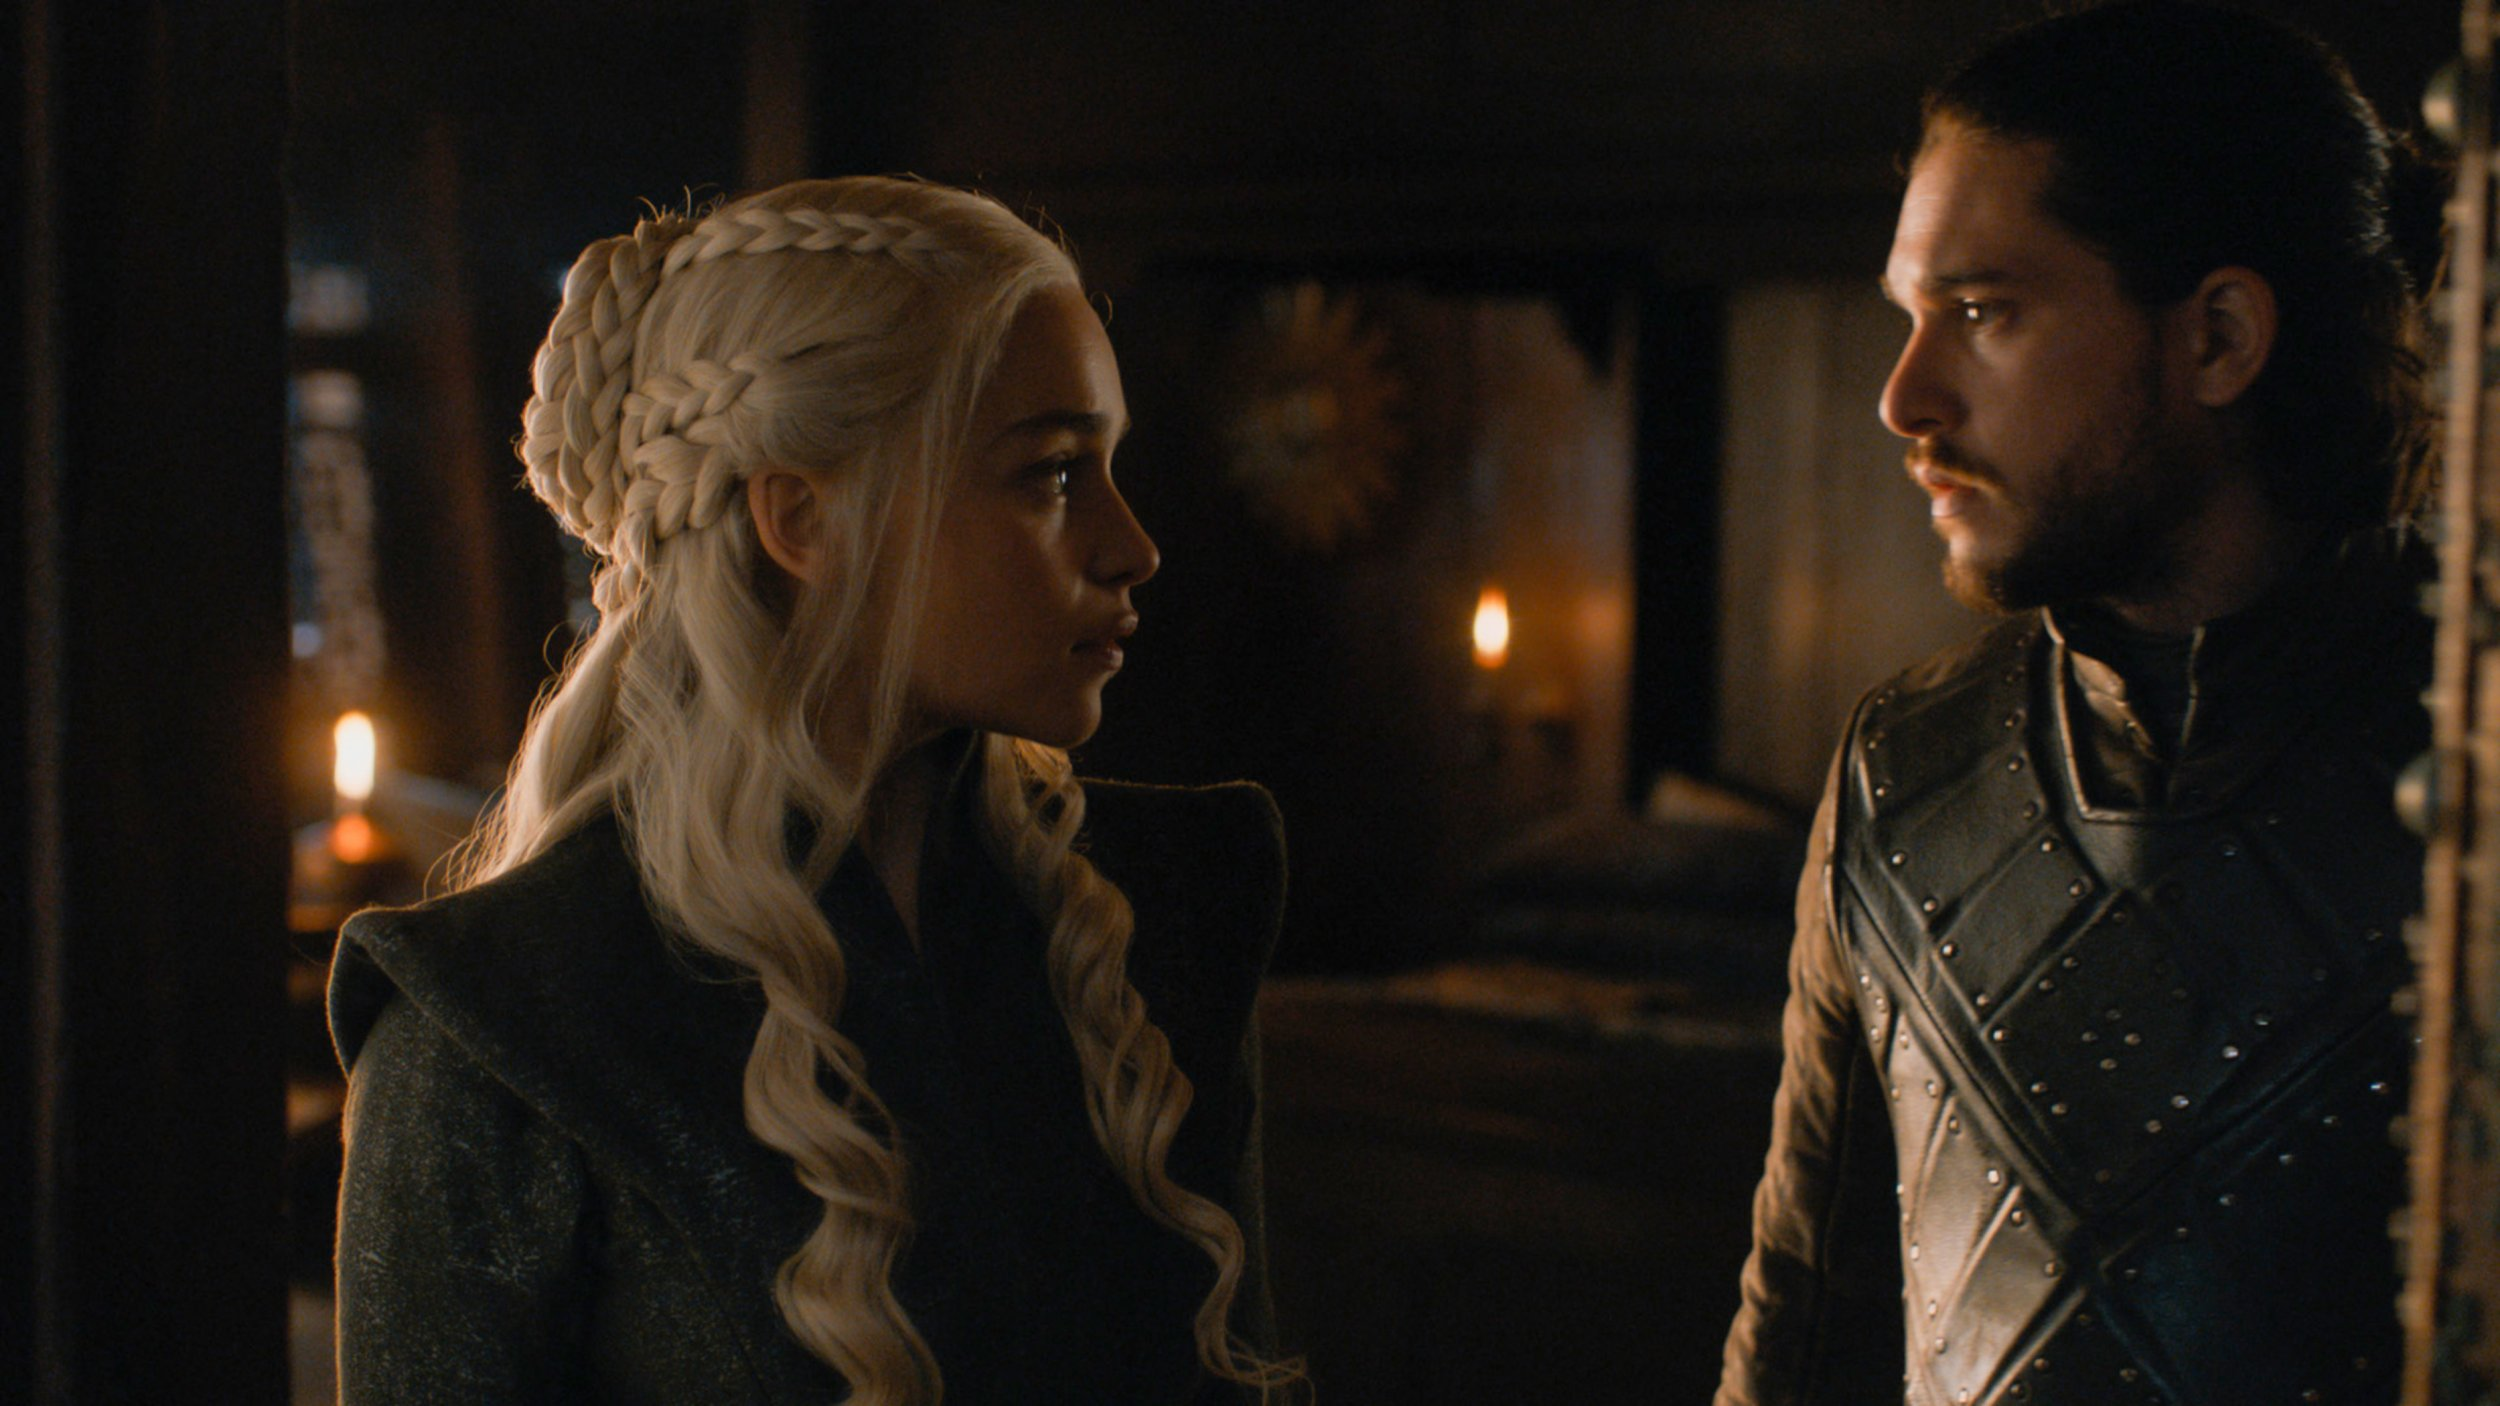 Jon snow and daenerys targaryen sex scene